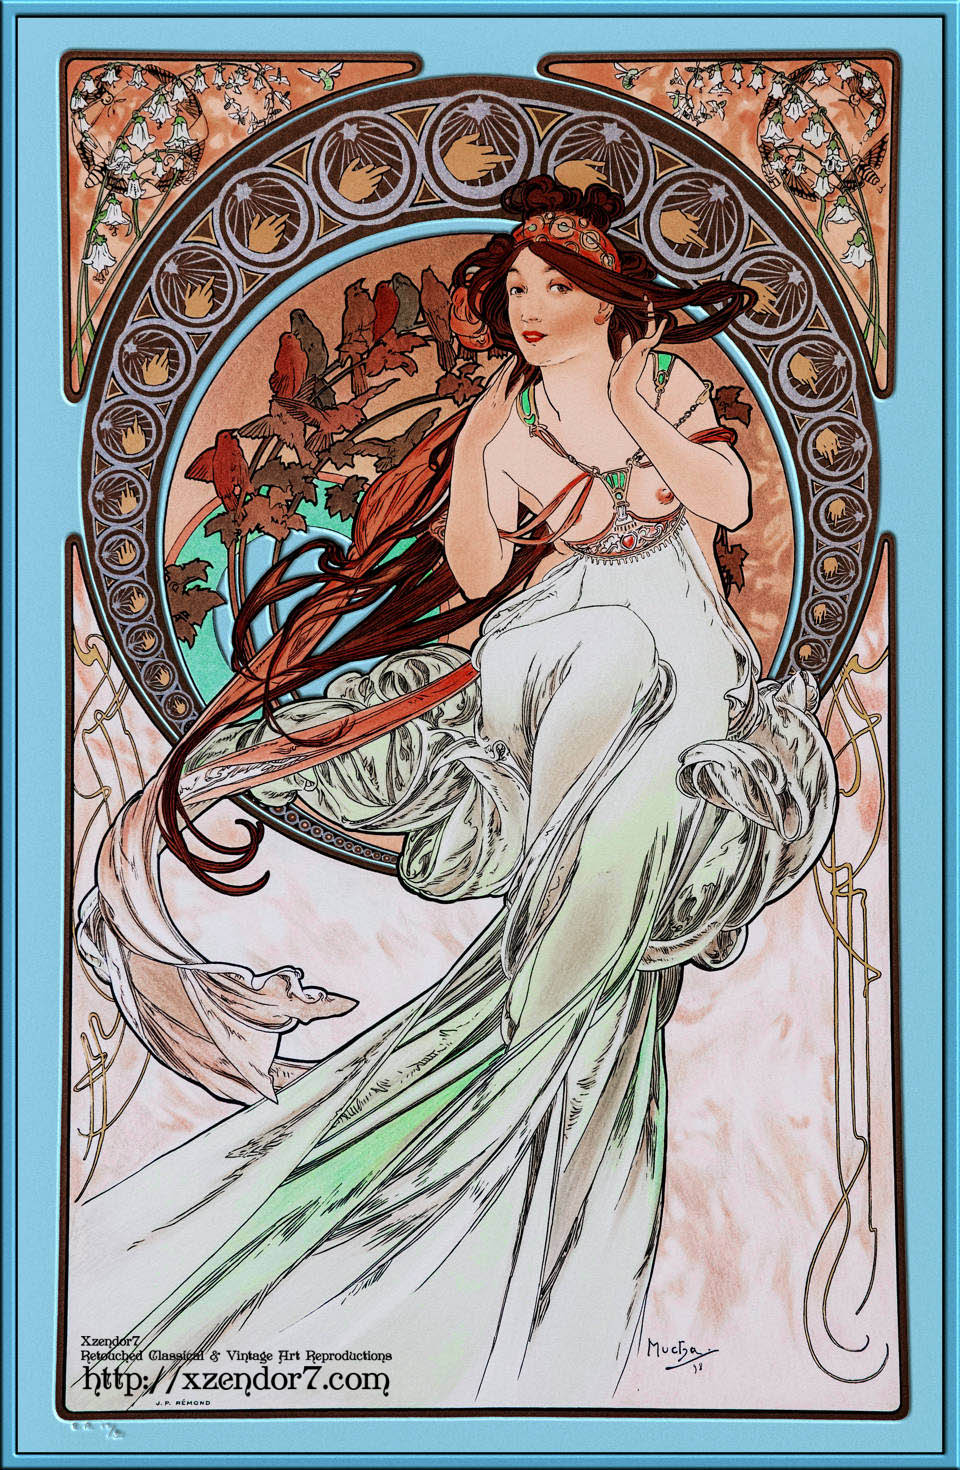 The Music by Alphonse Mucha